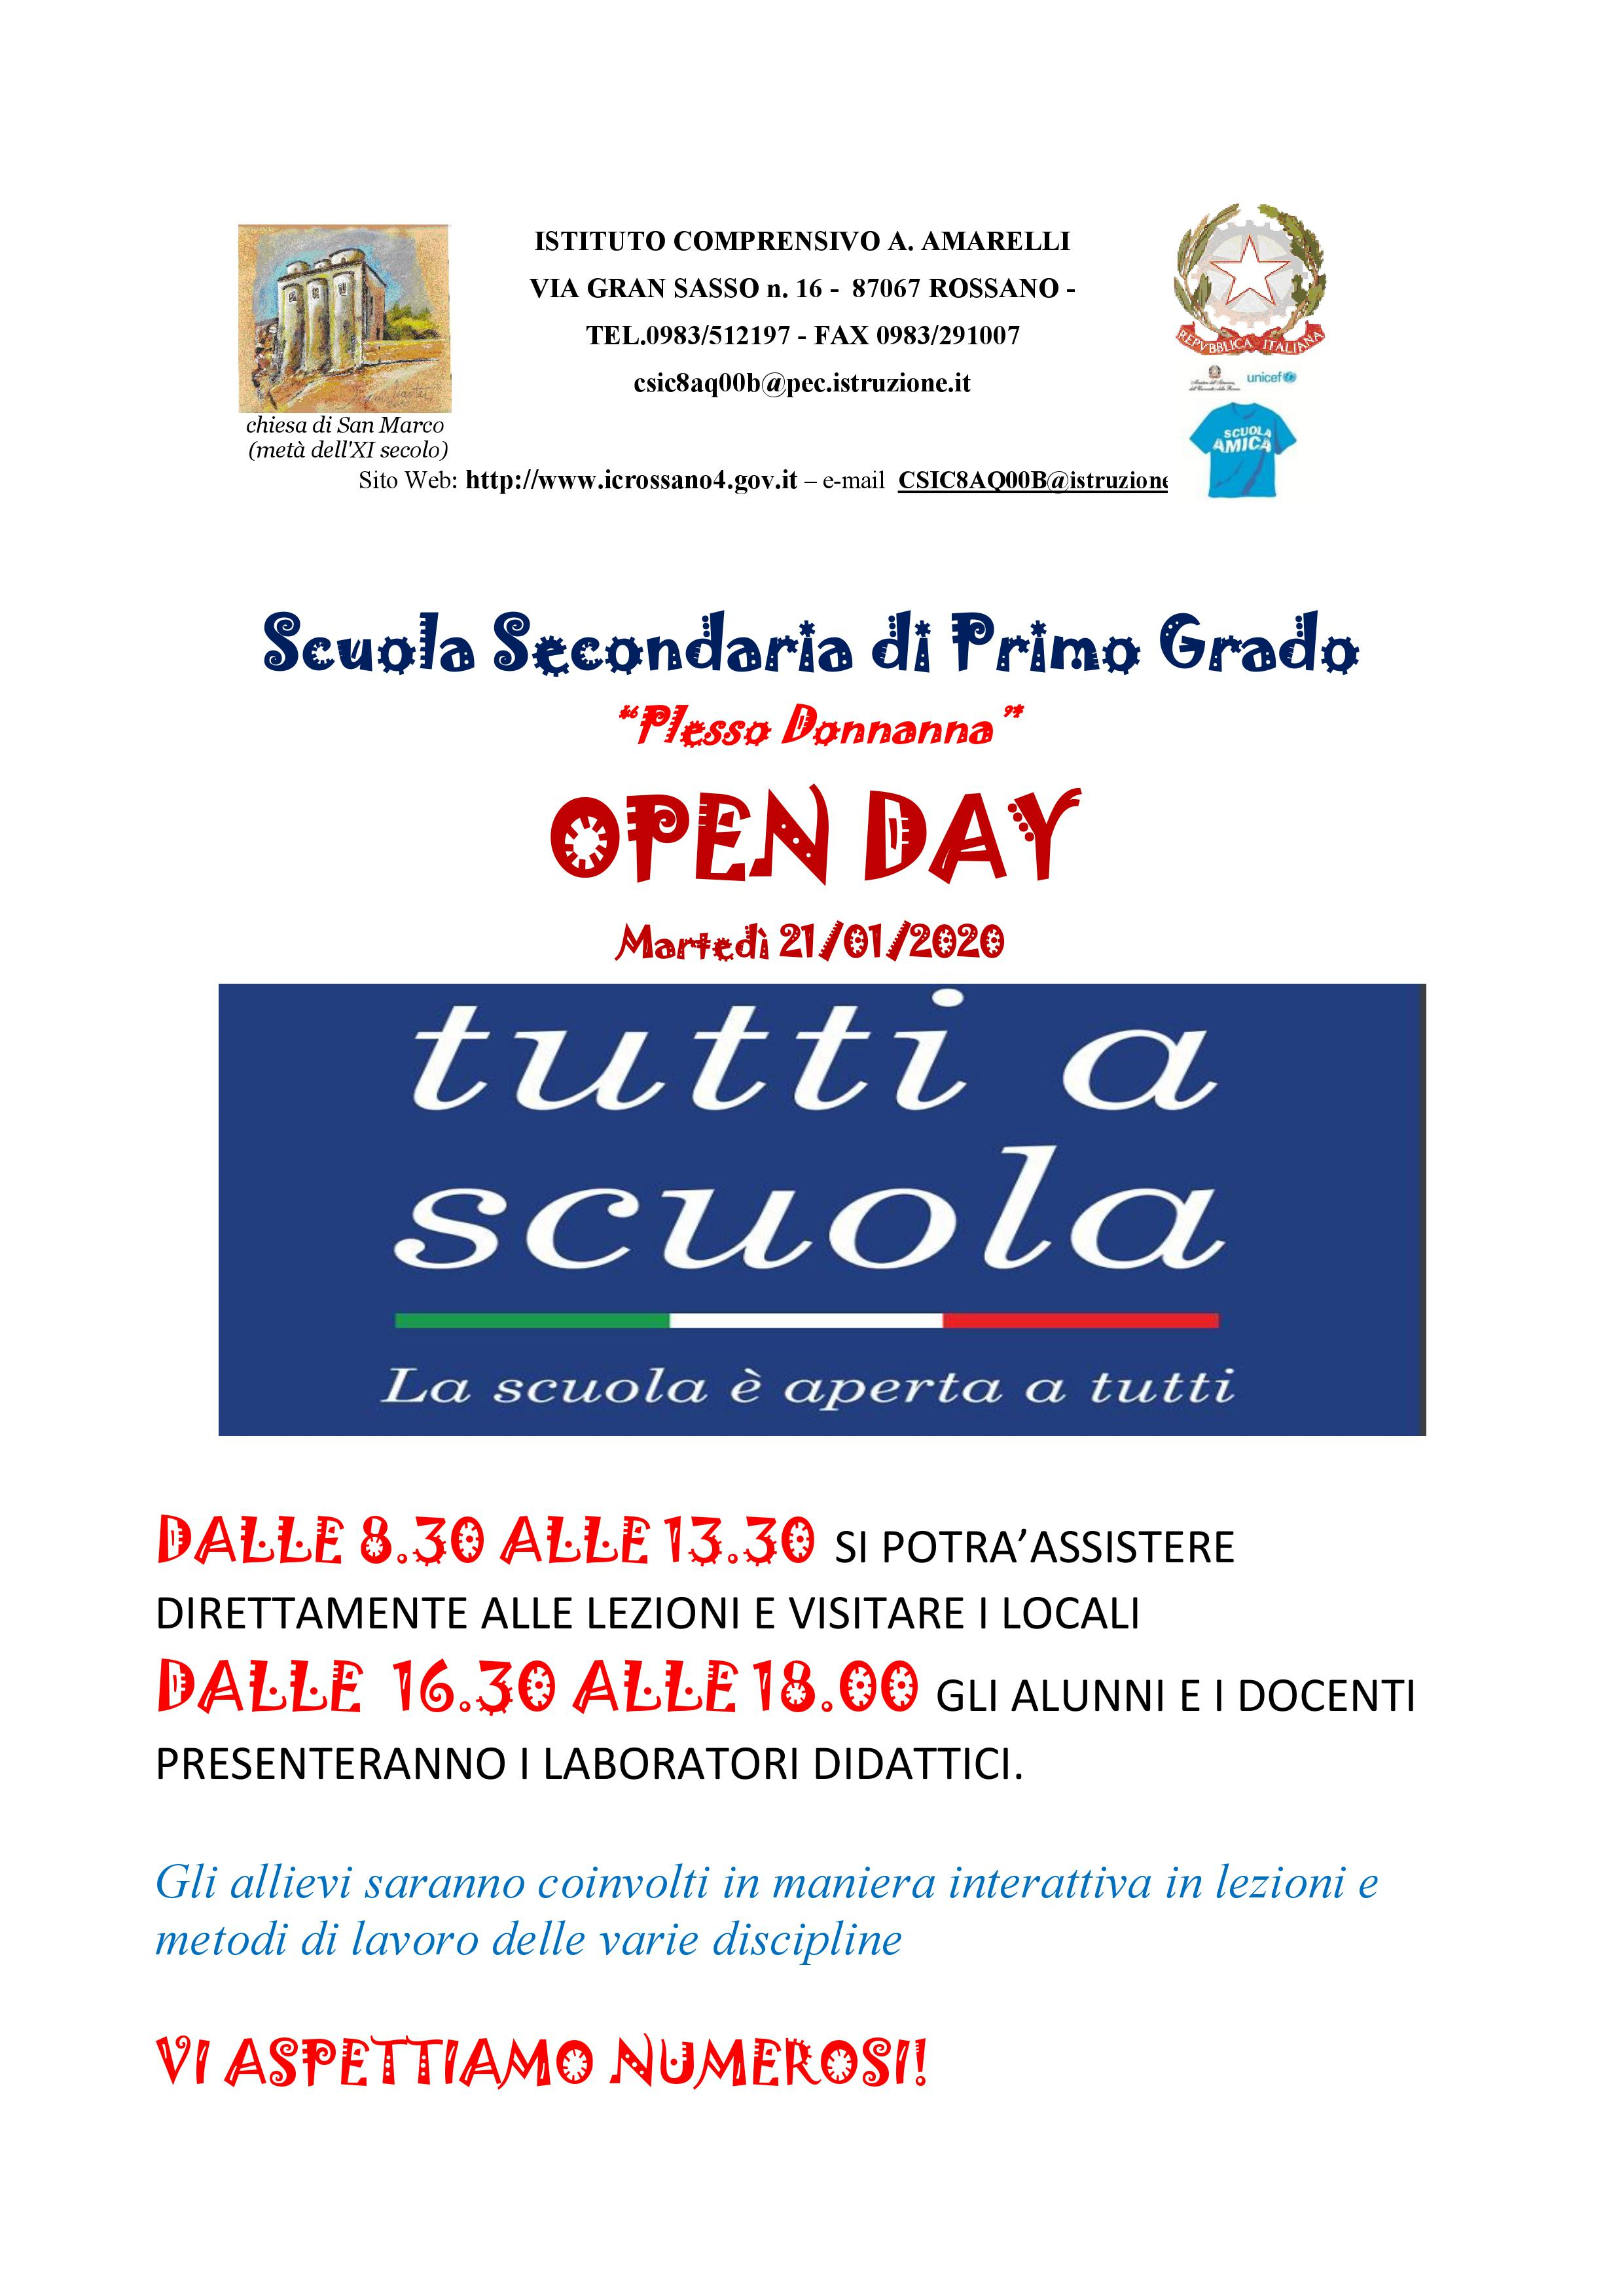 locandina open day Donnanna 19-20